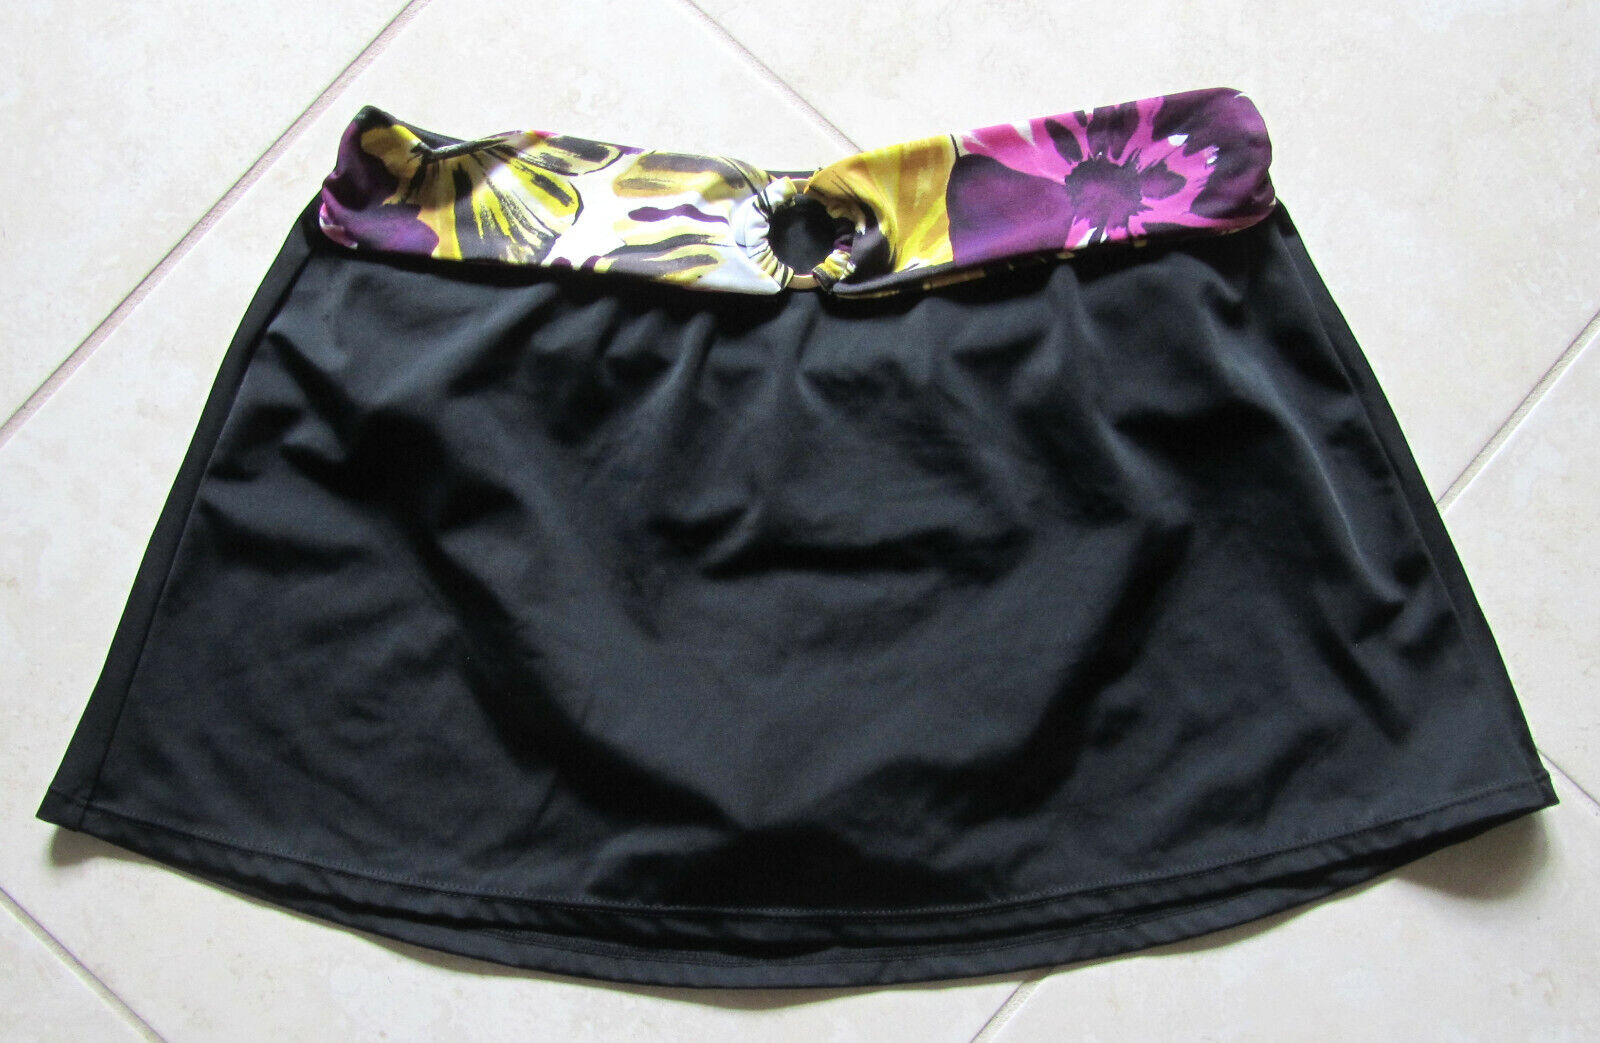 JANTZEN Tankini Bikini Swimsuit,    Size 10.  Bathing Suit. Multi  NWT 793575